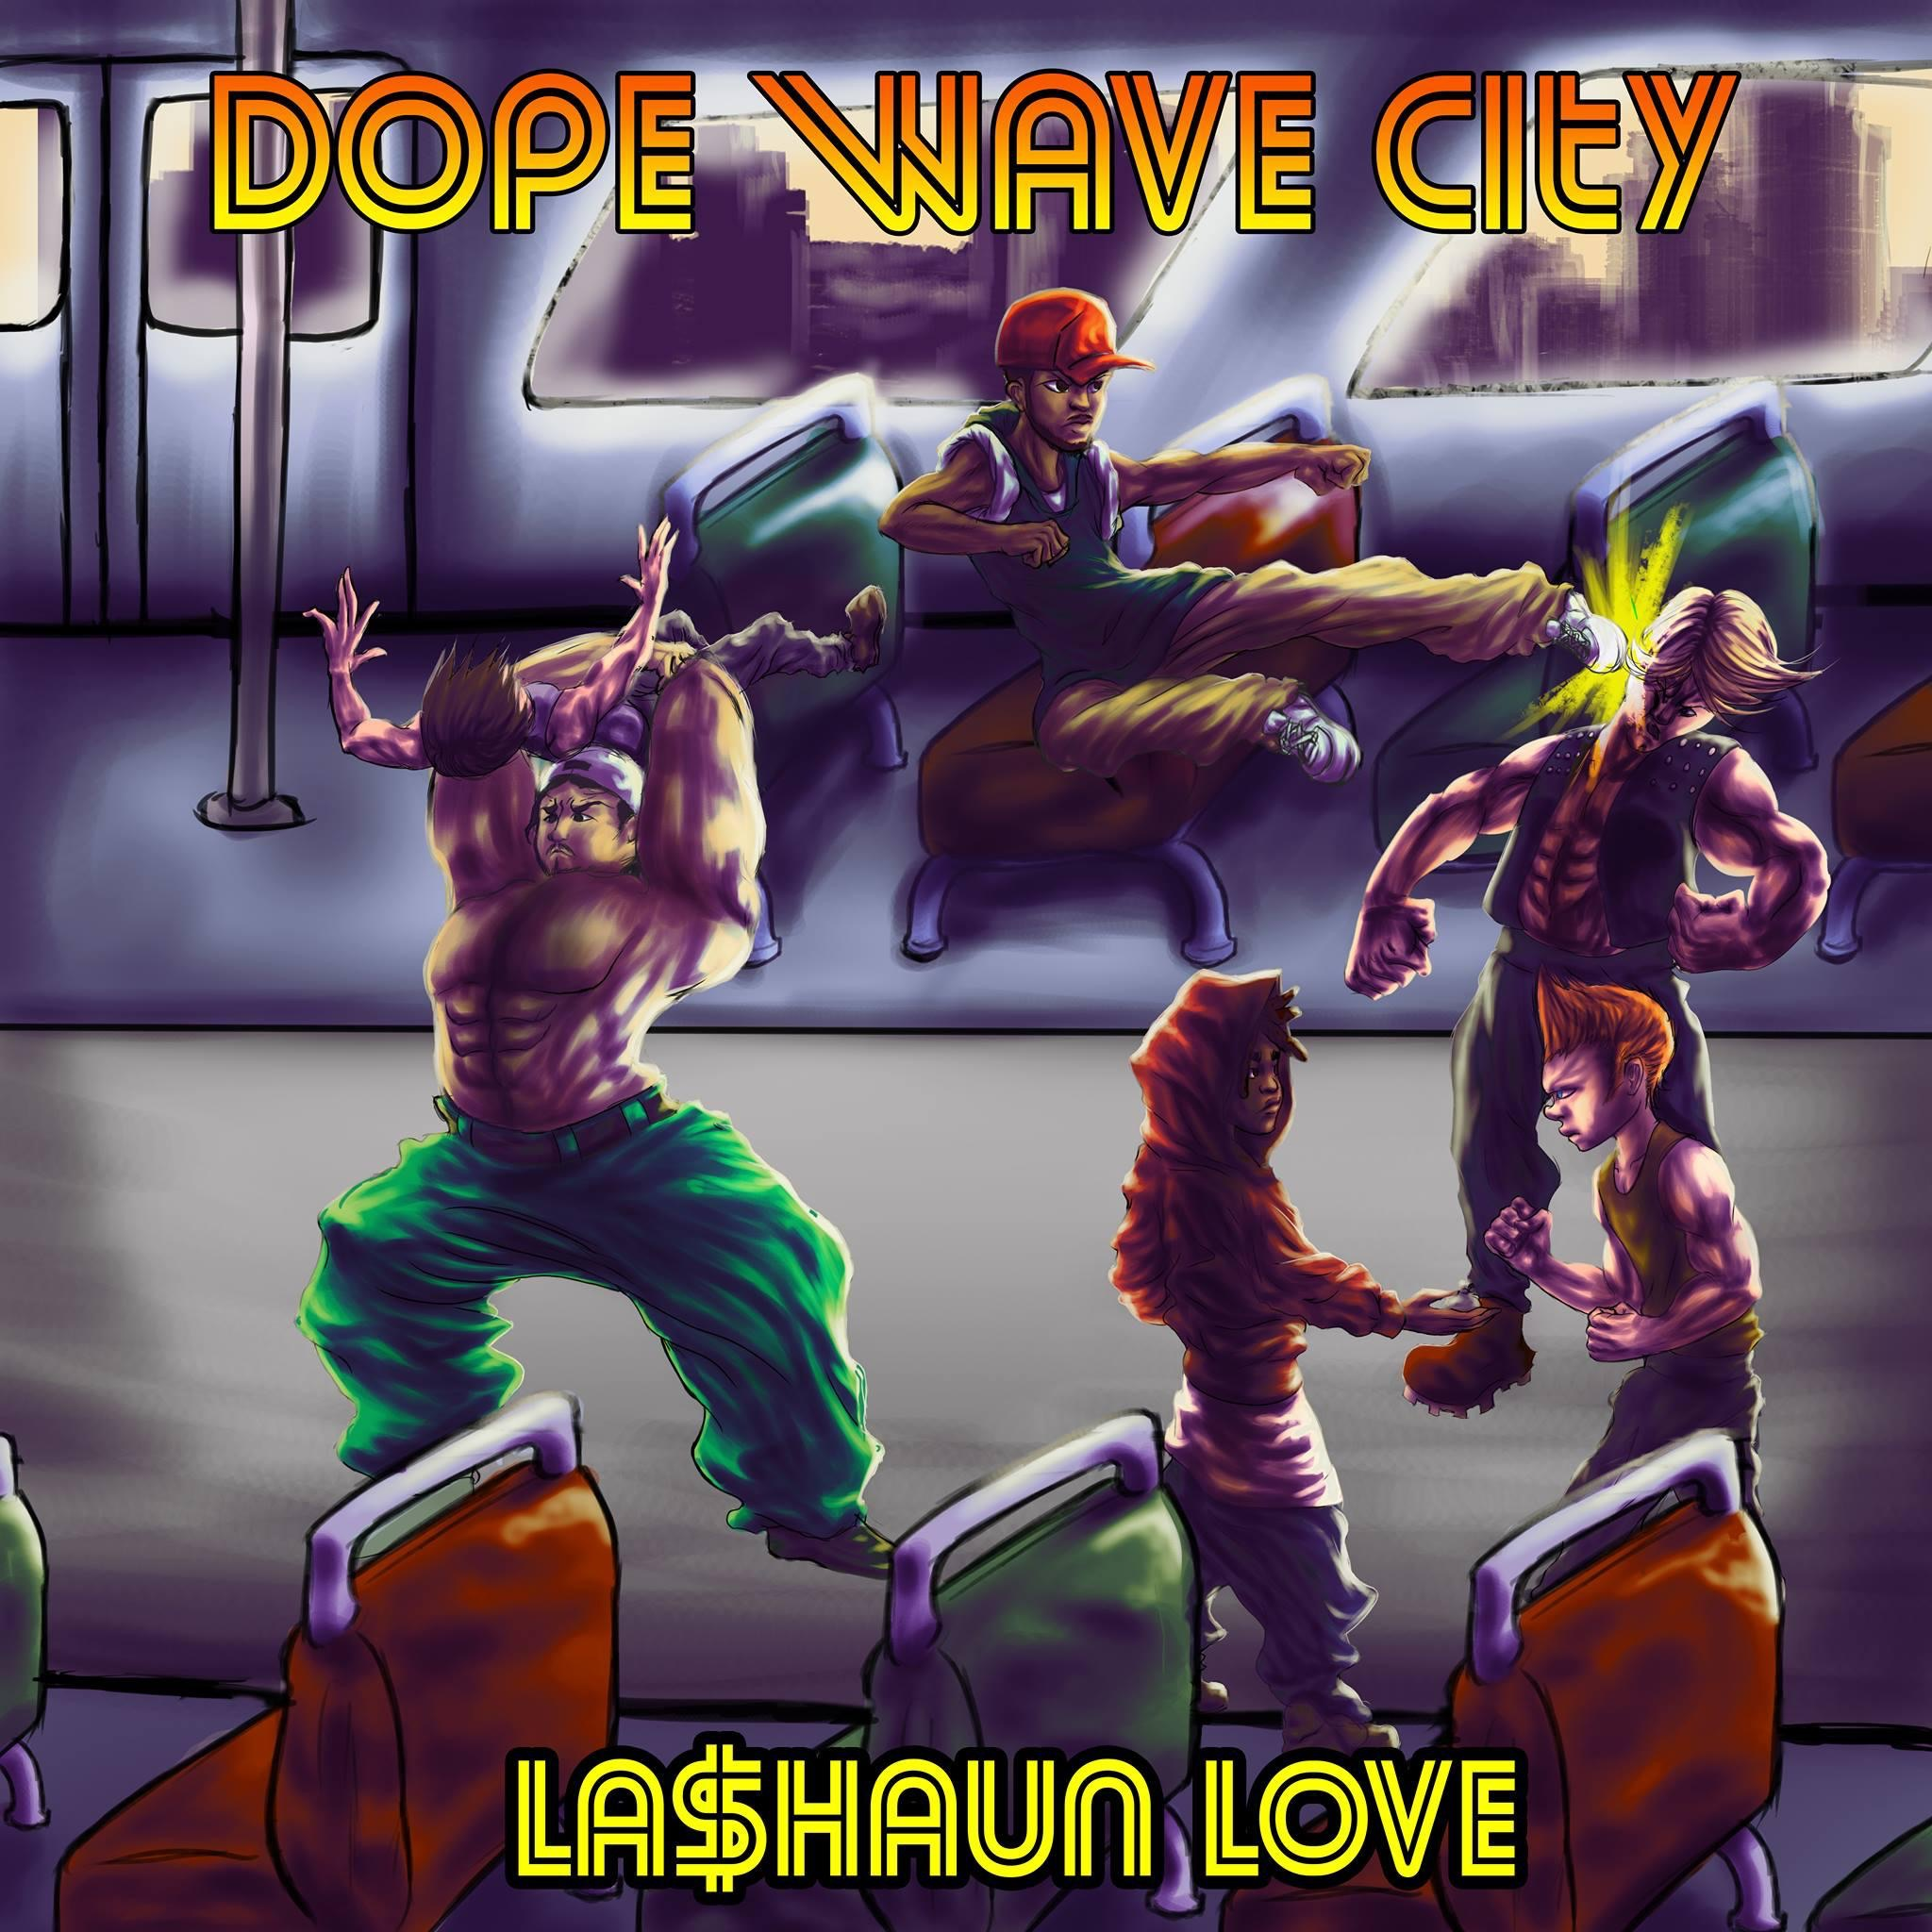 Dope Wave City (feat. Infinite Villain) - Single